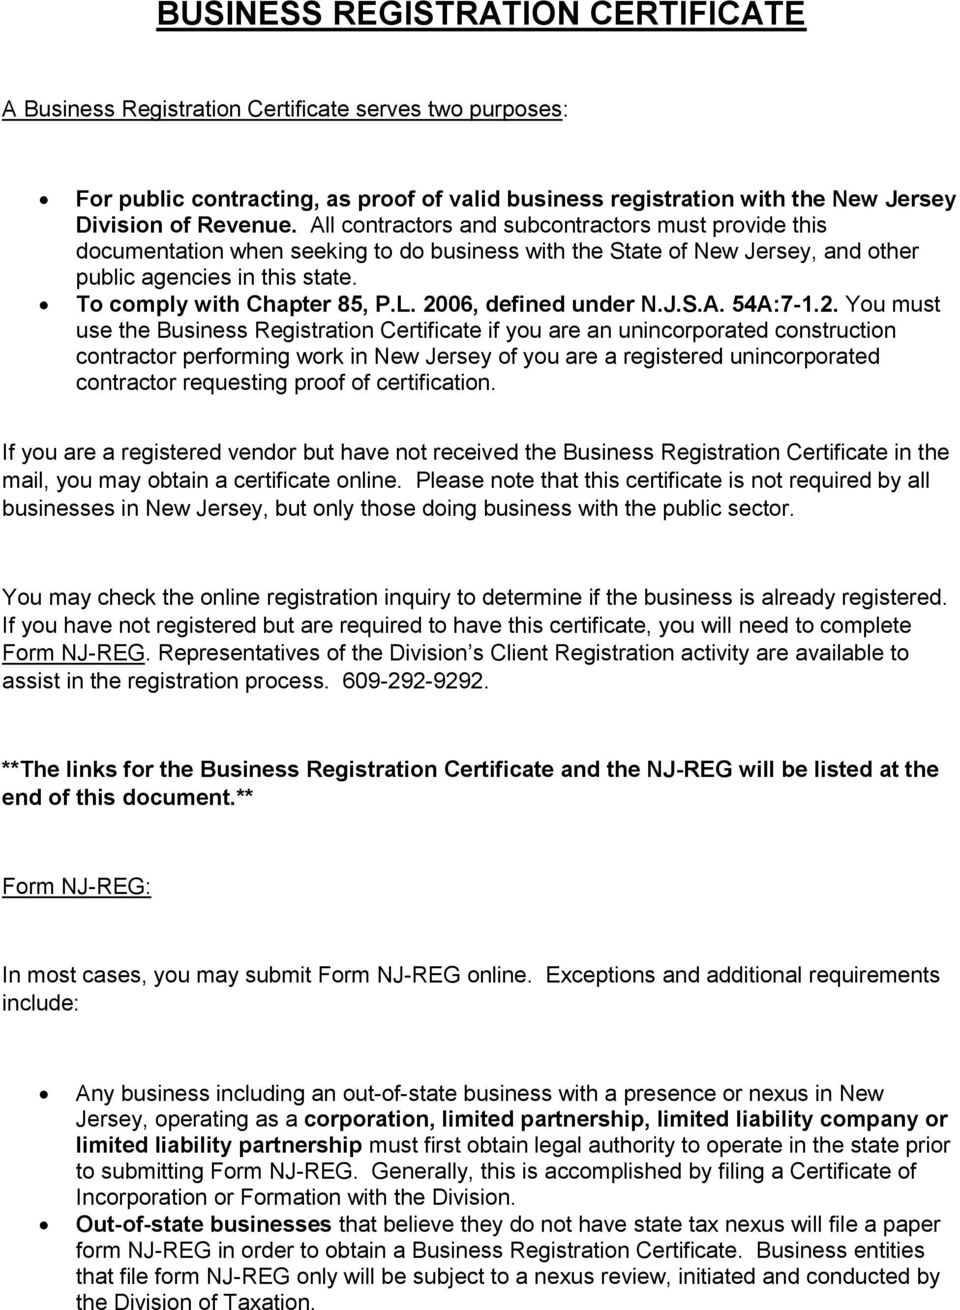 2006, defined under N.J.S.A. 54A:7-1.2. You must use the Business Registration Certificate if you are an unincorporated construction contractor performing work in New Jersey of you are a registered